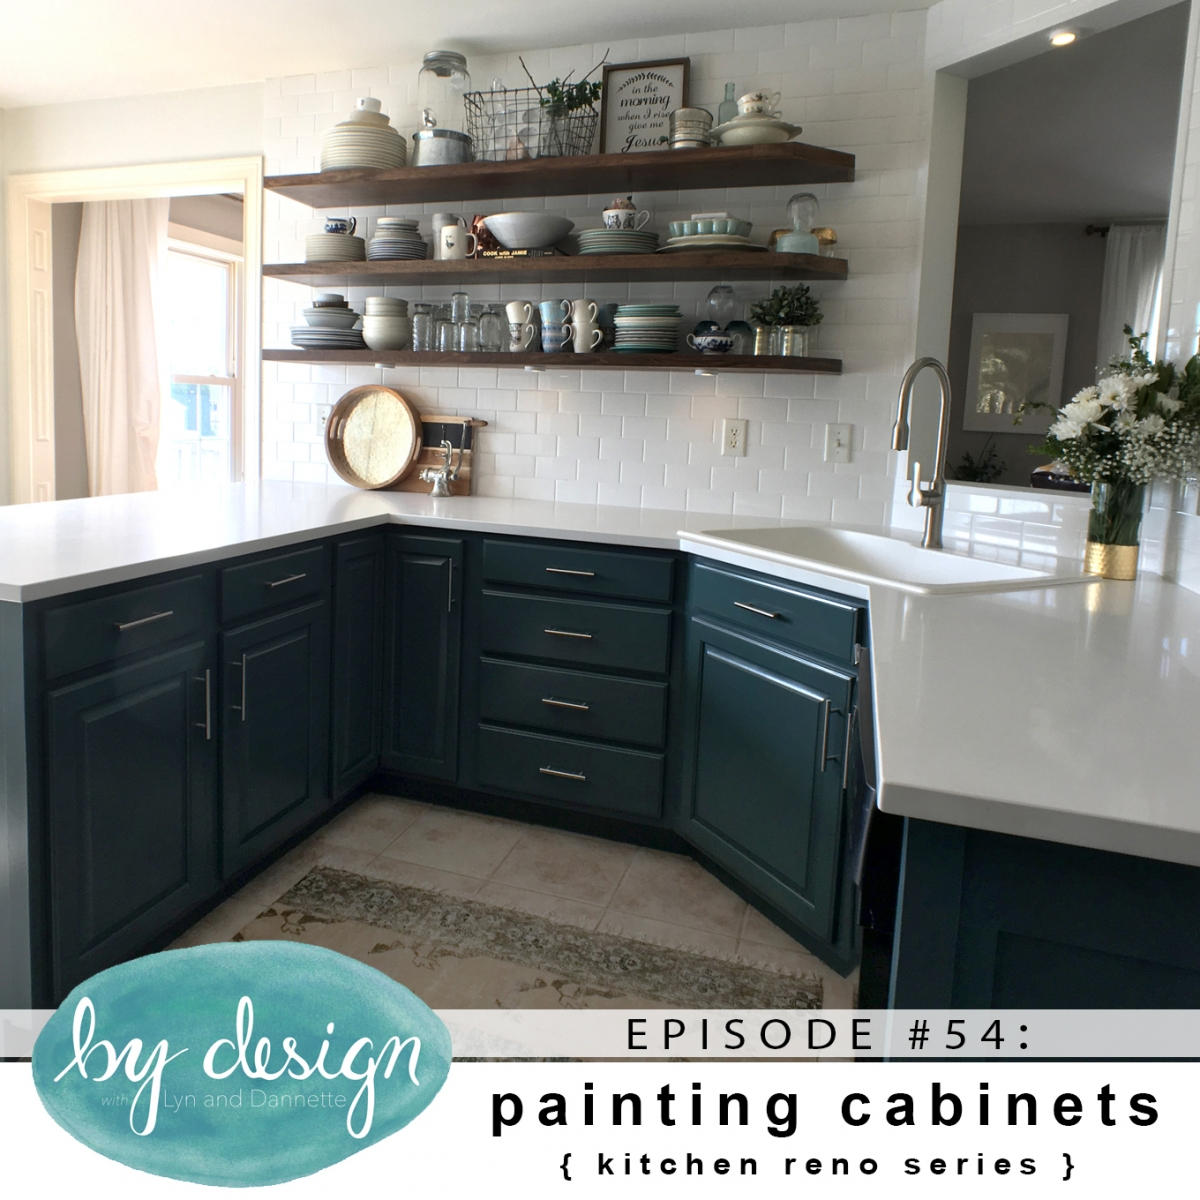 Weu0027re Continuing With Our Kitchen Reno Series And Today Is All About  PAINTING CABINETS. We Talk Thru All The Necessary Steps, Share Some Of The  Products We ...